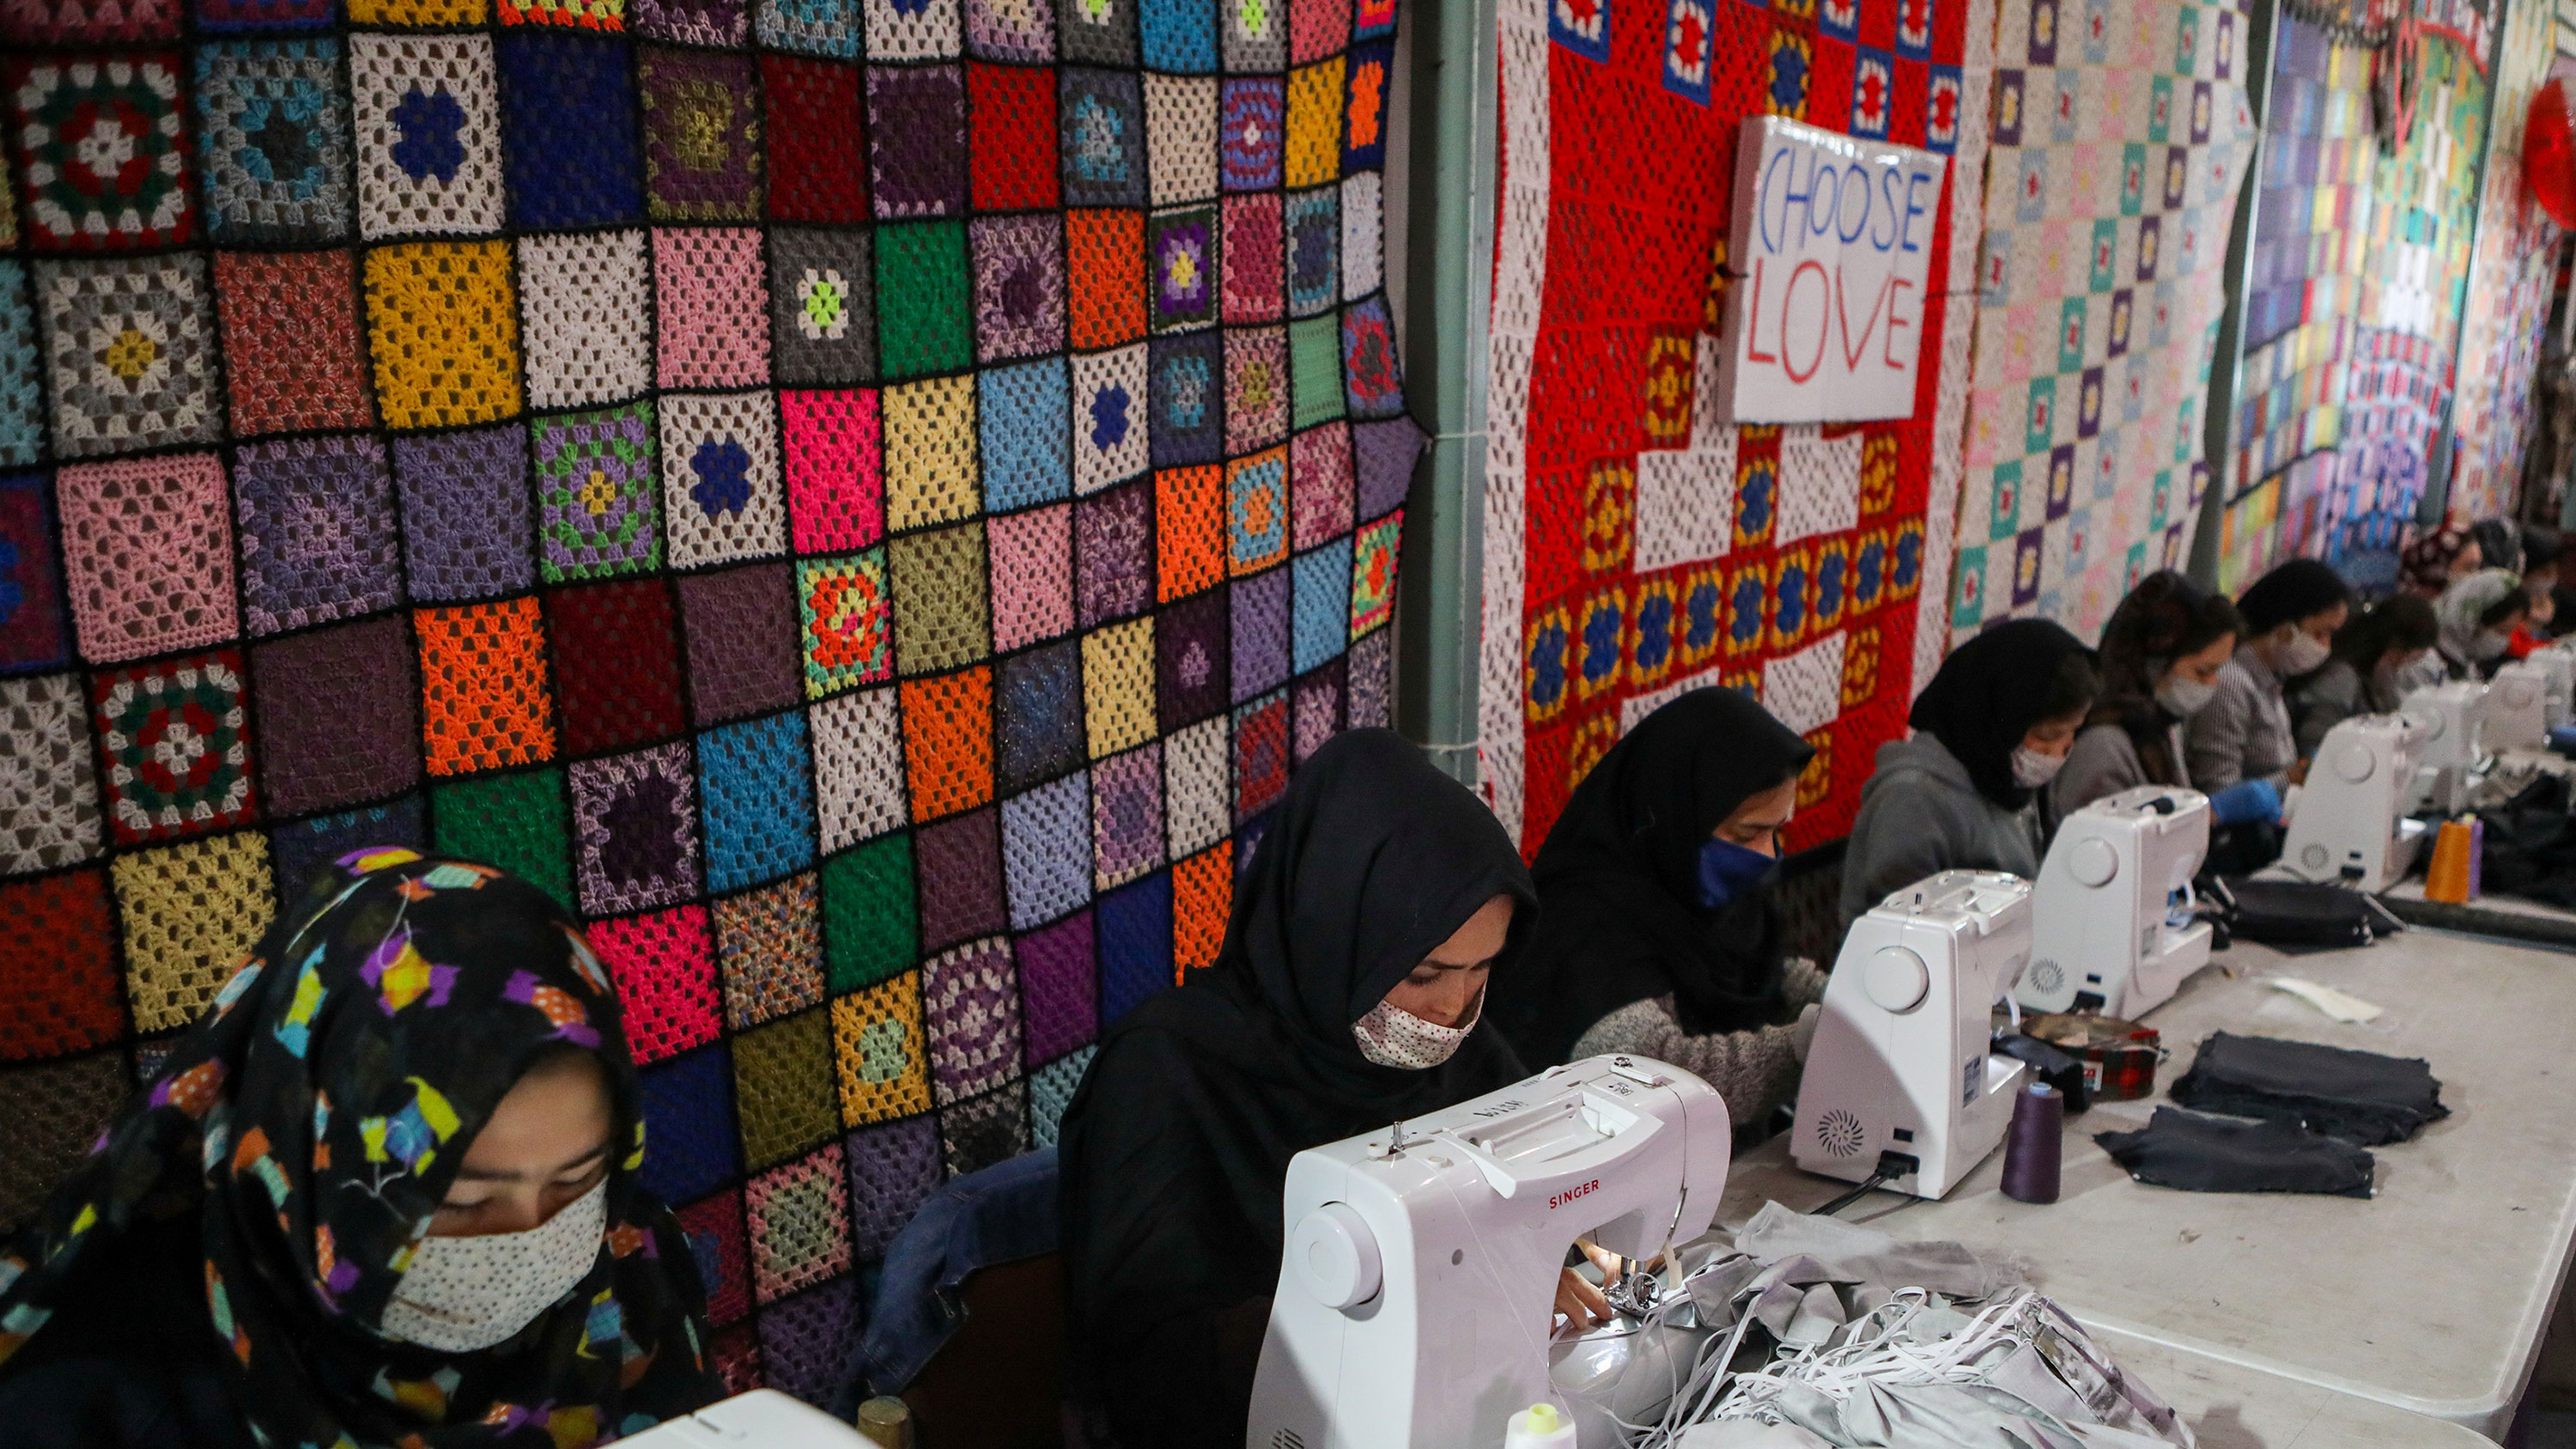 The photo shows a row of women at sewing machines sewing masks with some multicolour quilts in the background.